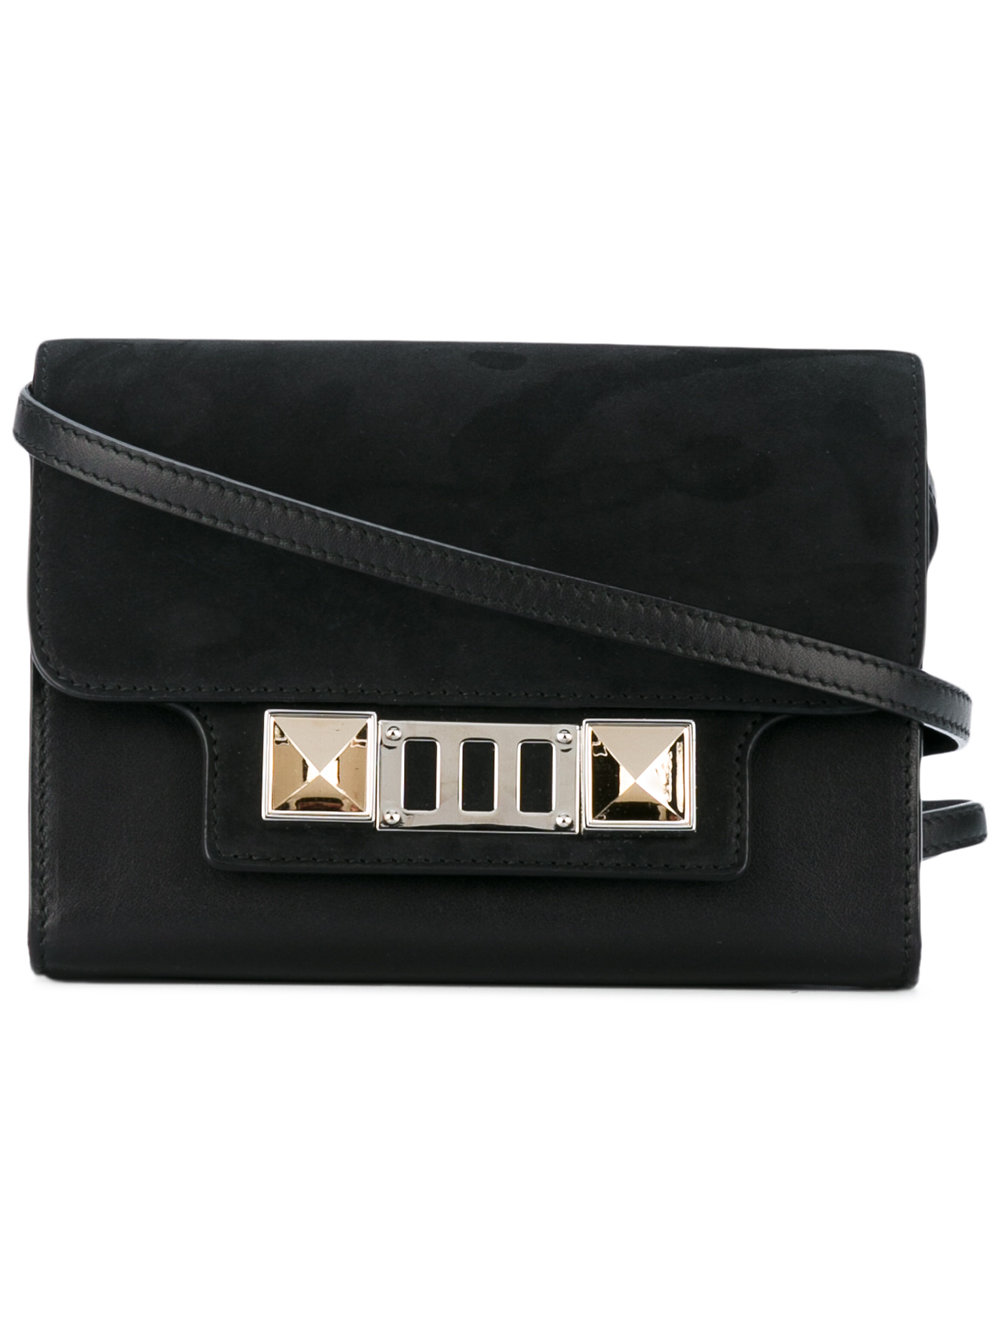 Proenza Schouler PS11 WALLET